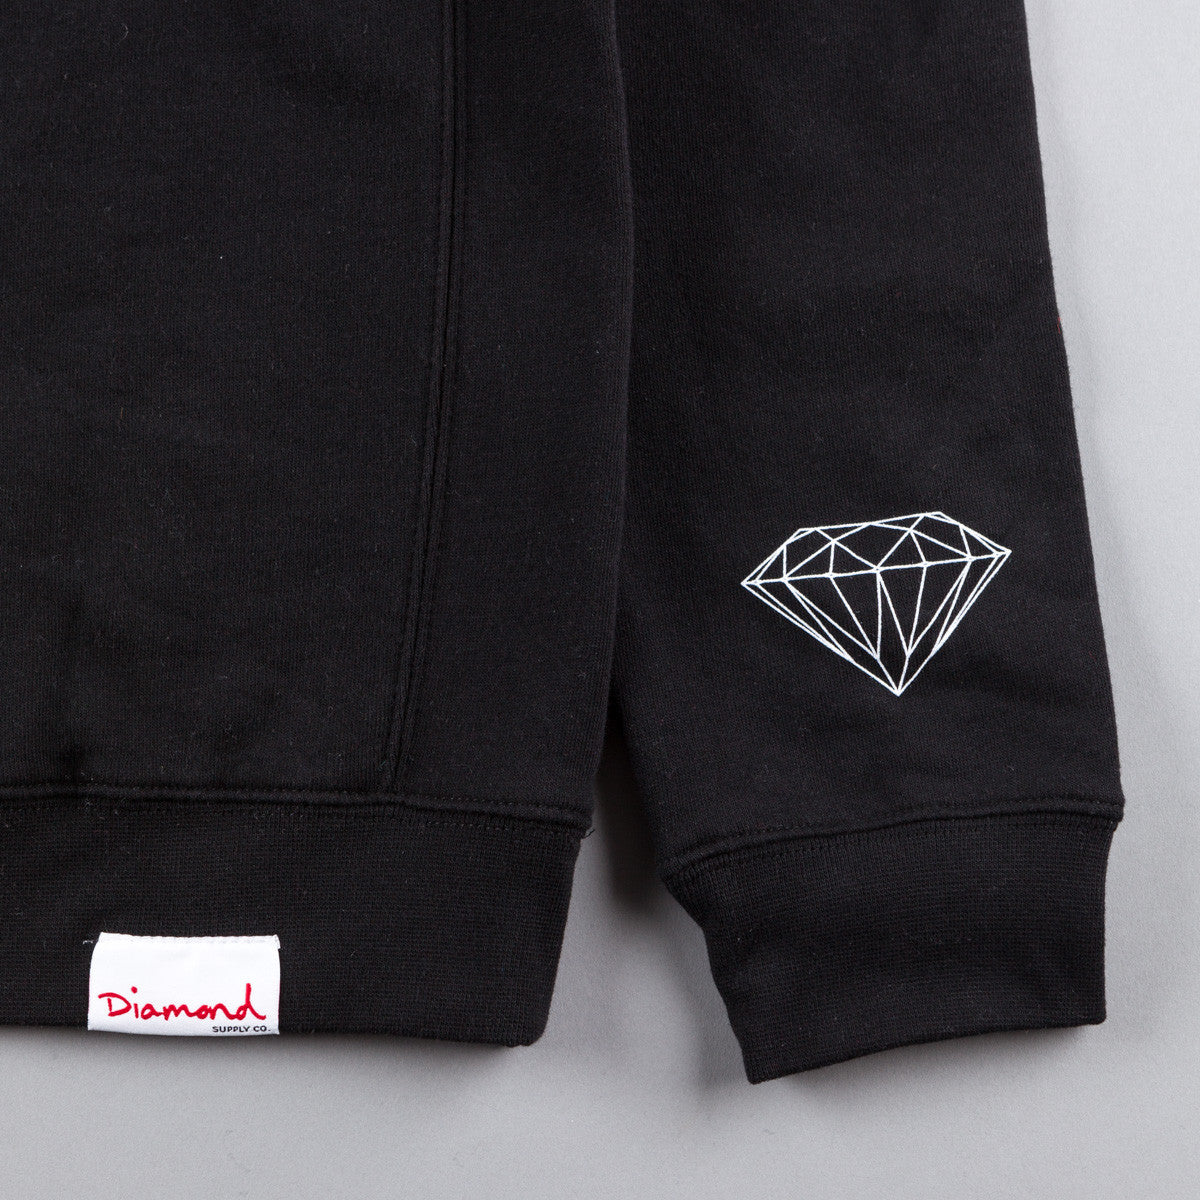 Diamond Skate Hardware Crewneck Sweatshirt - Black